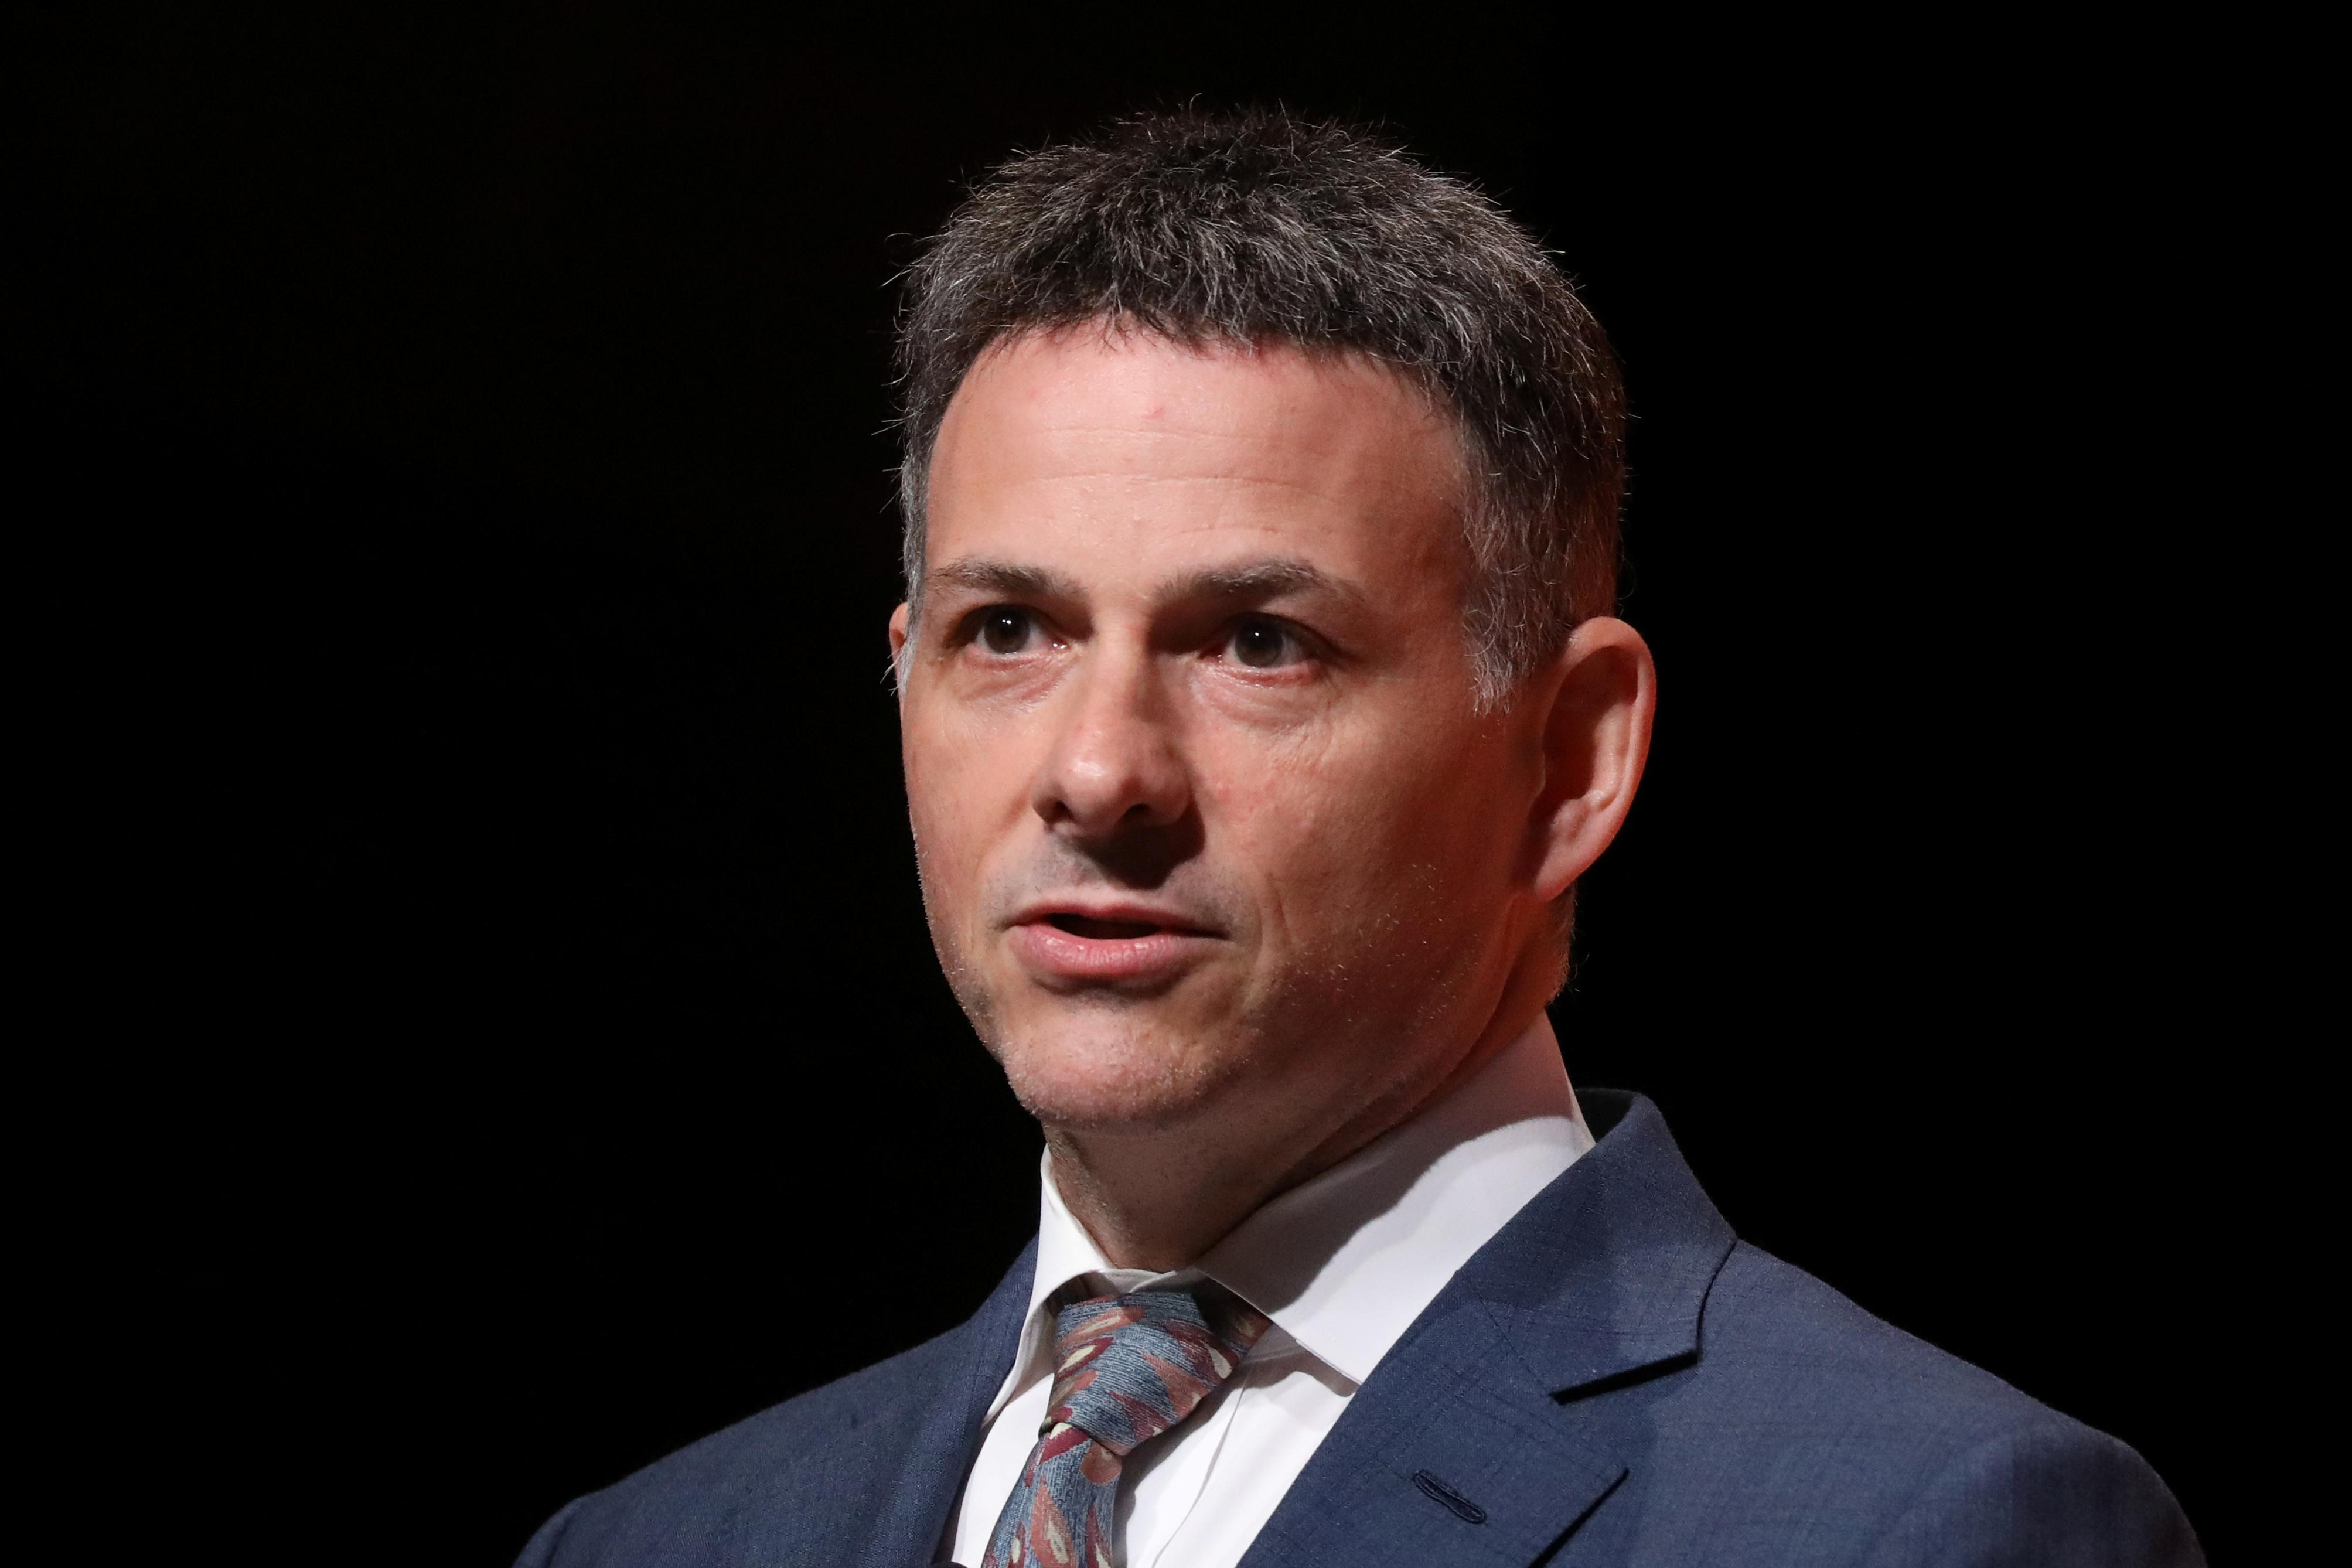 David Einhorn demands Elon Musk resign over solar panel flap